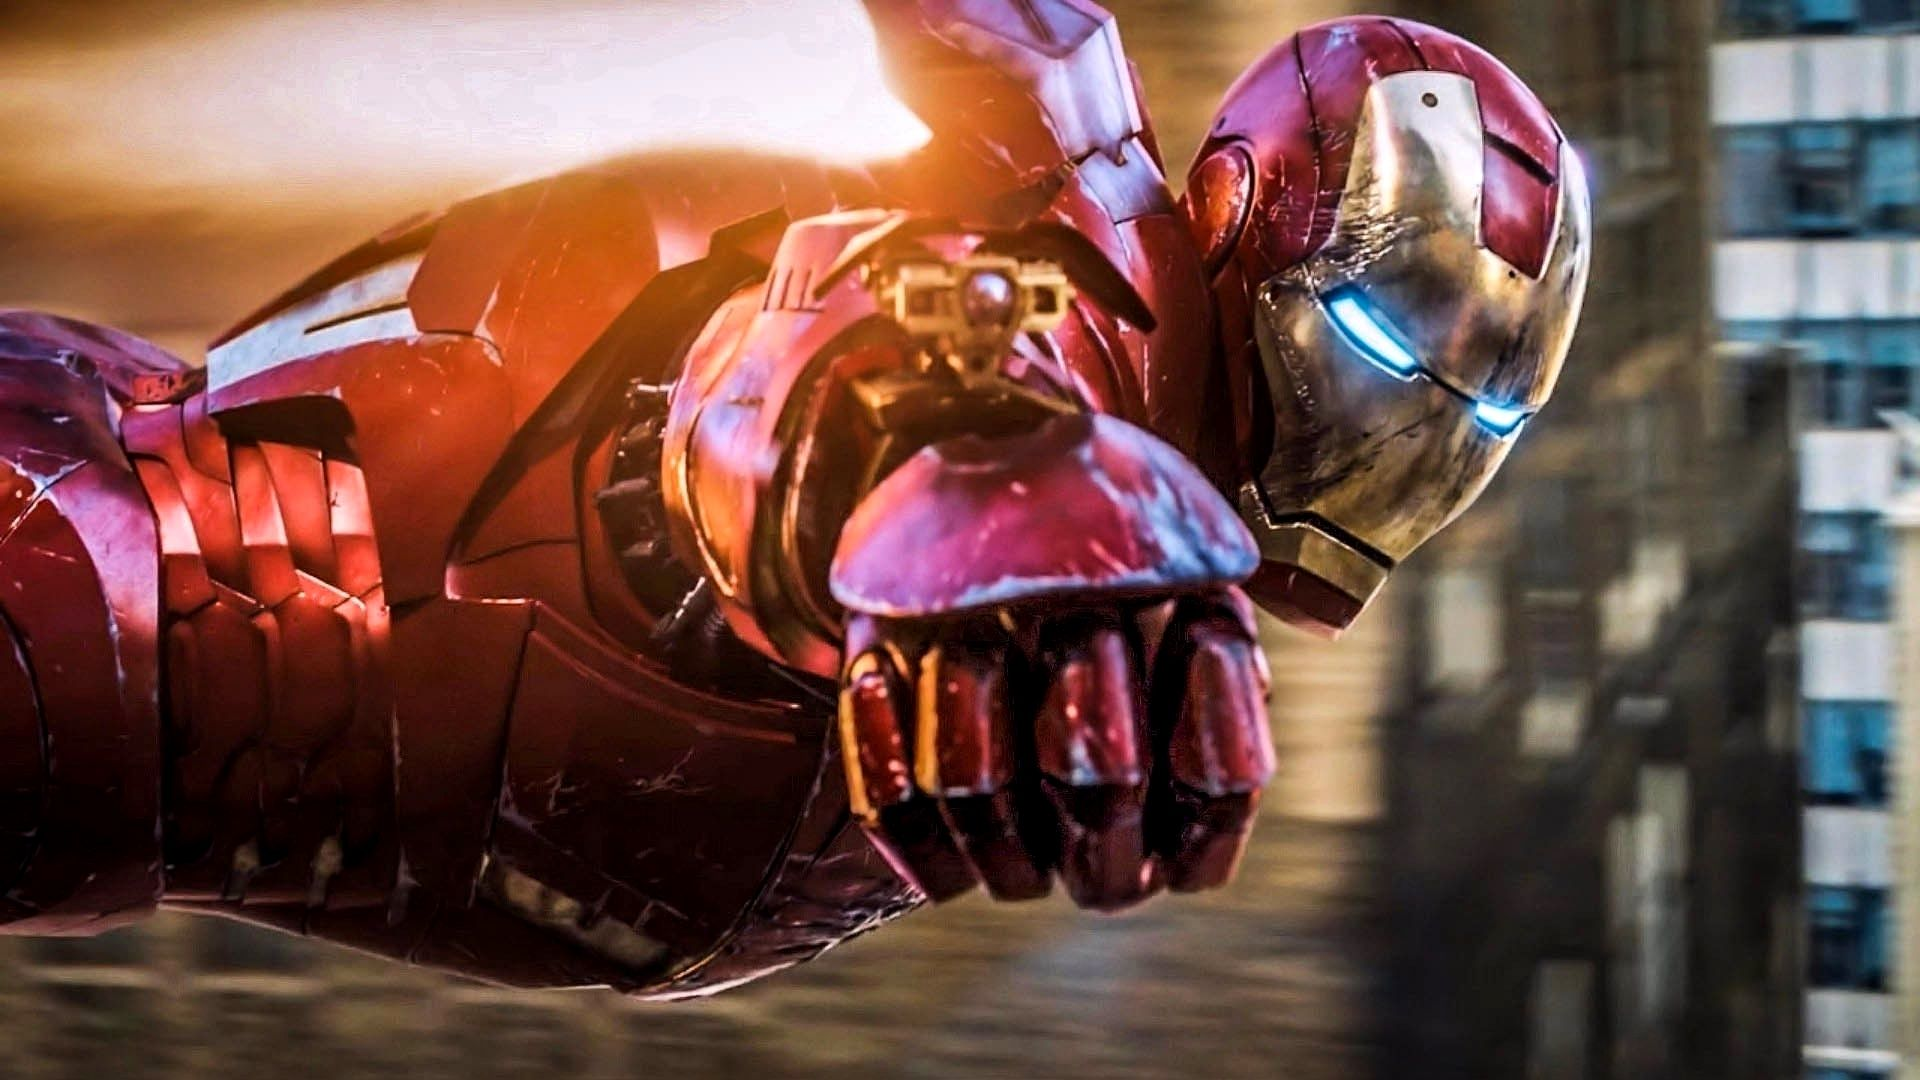 4k Wallpaper For Mobile 1920x1080 Iron Man Hd Gallery Marvel Wallpaper Hd Iron Man Wallpaper Marvel Wallpaper